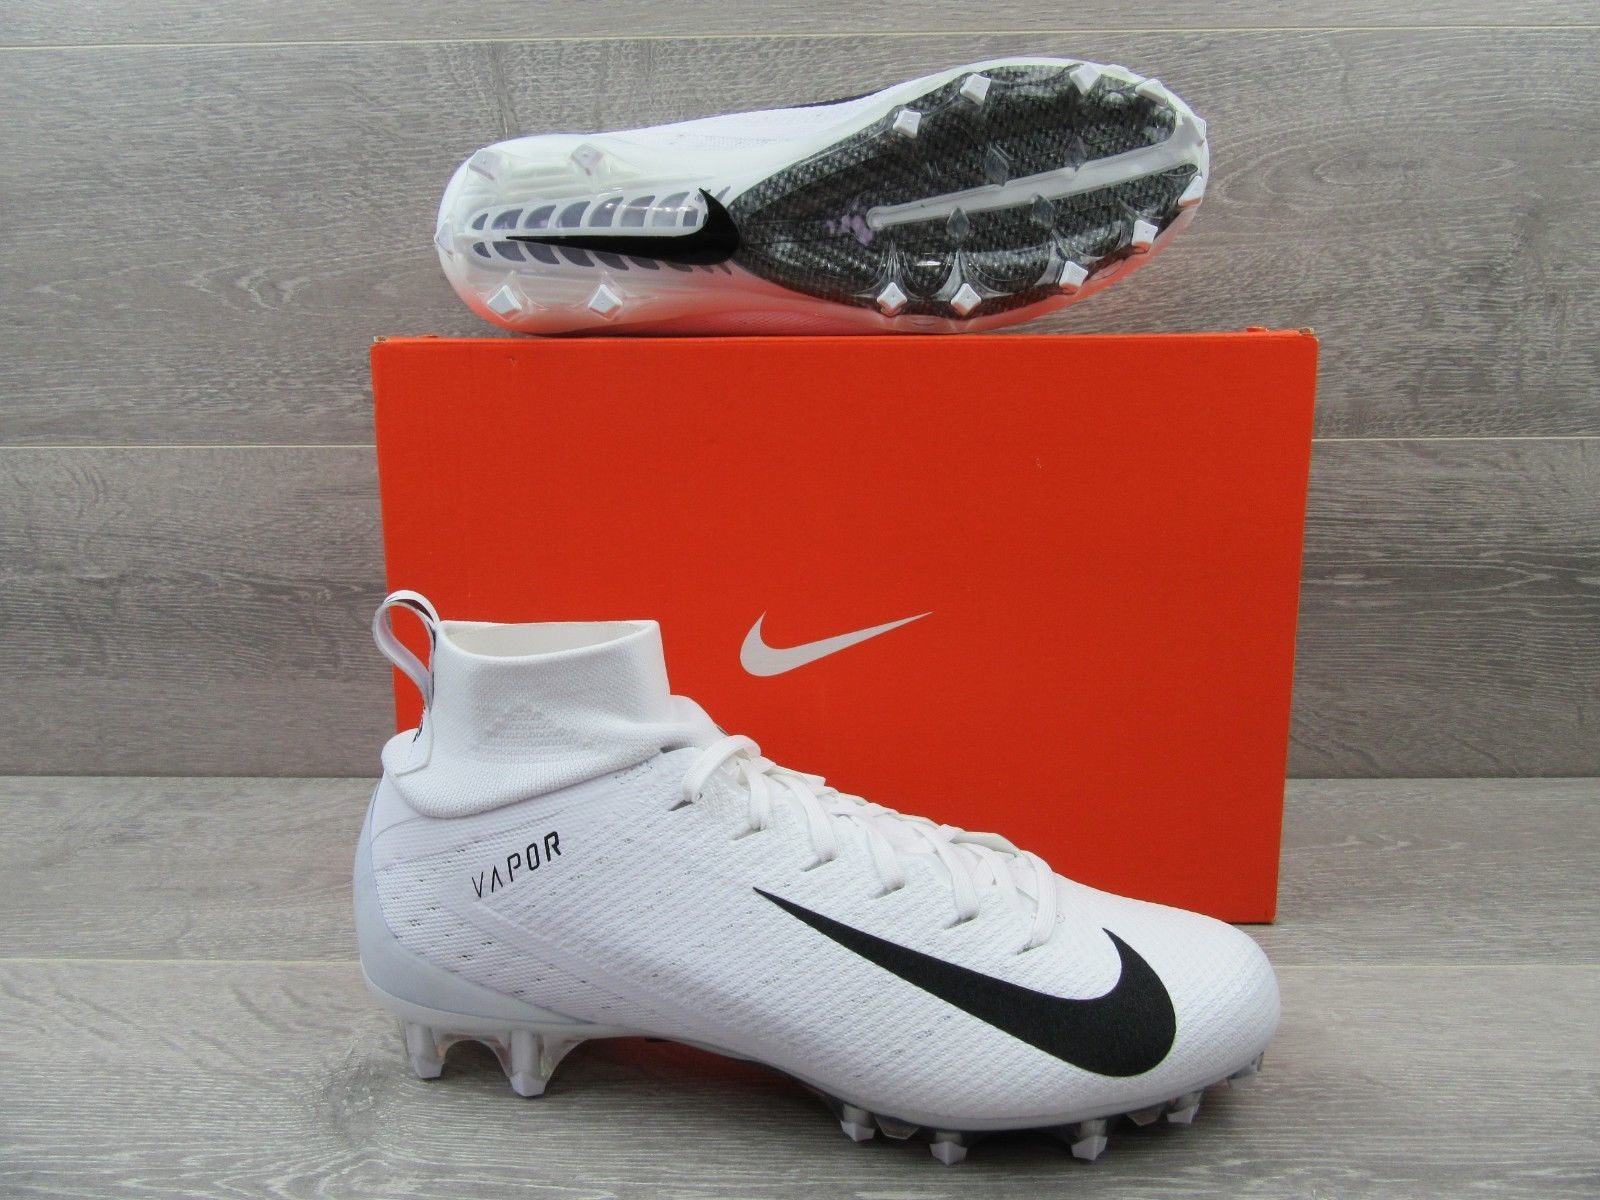 the latest dda98 64b4f Nike Vapor Untouchable Pro 3 Football Cleats Size 11 White Black 917165 105  New